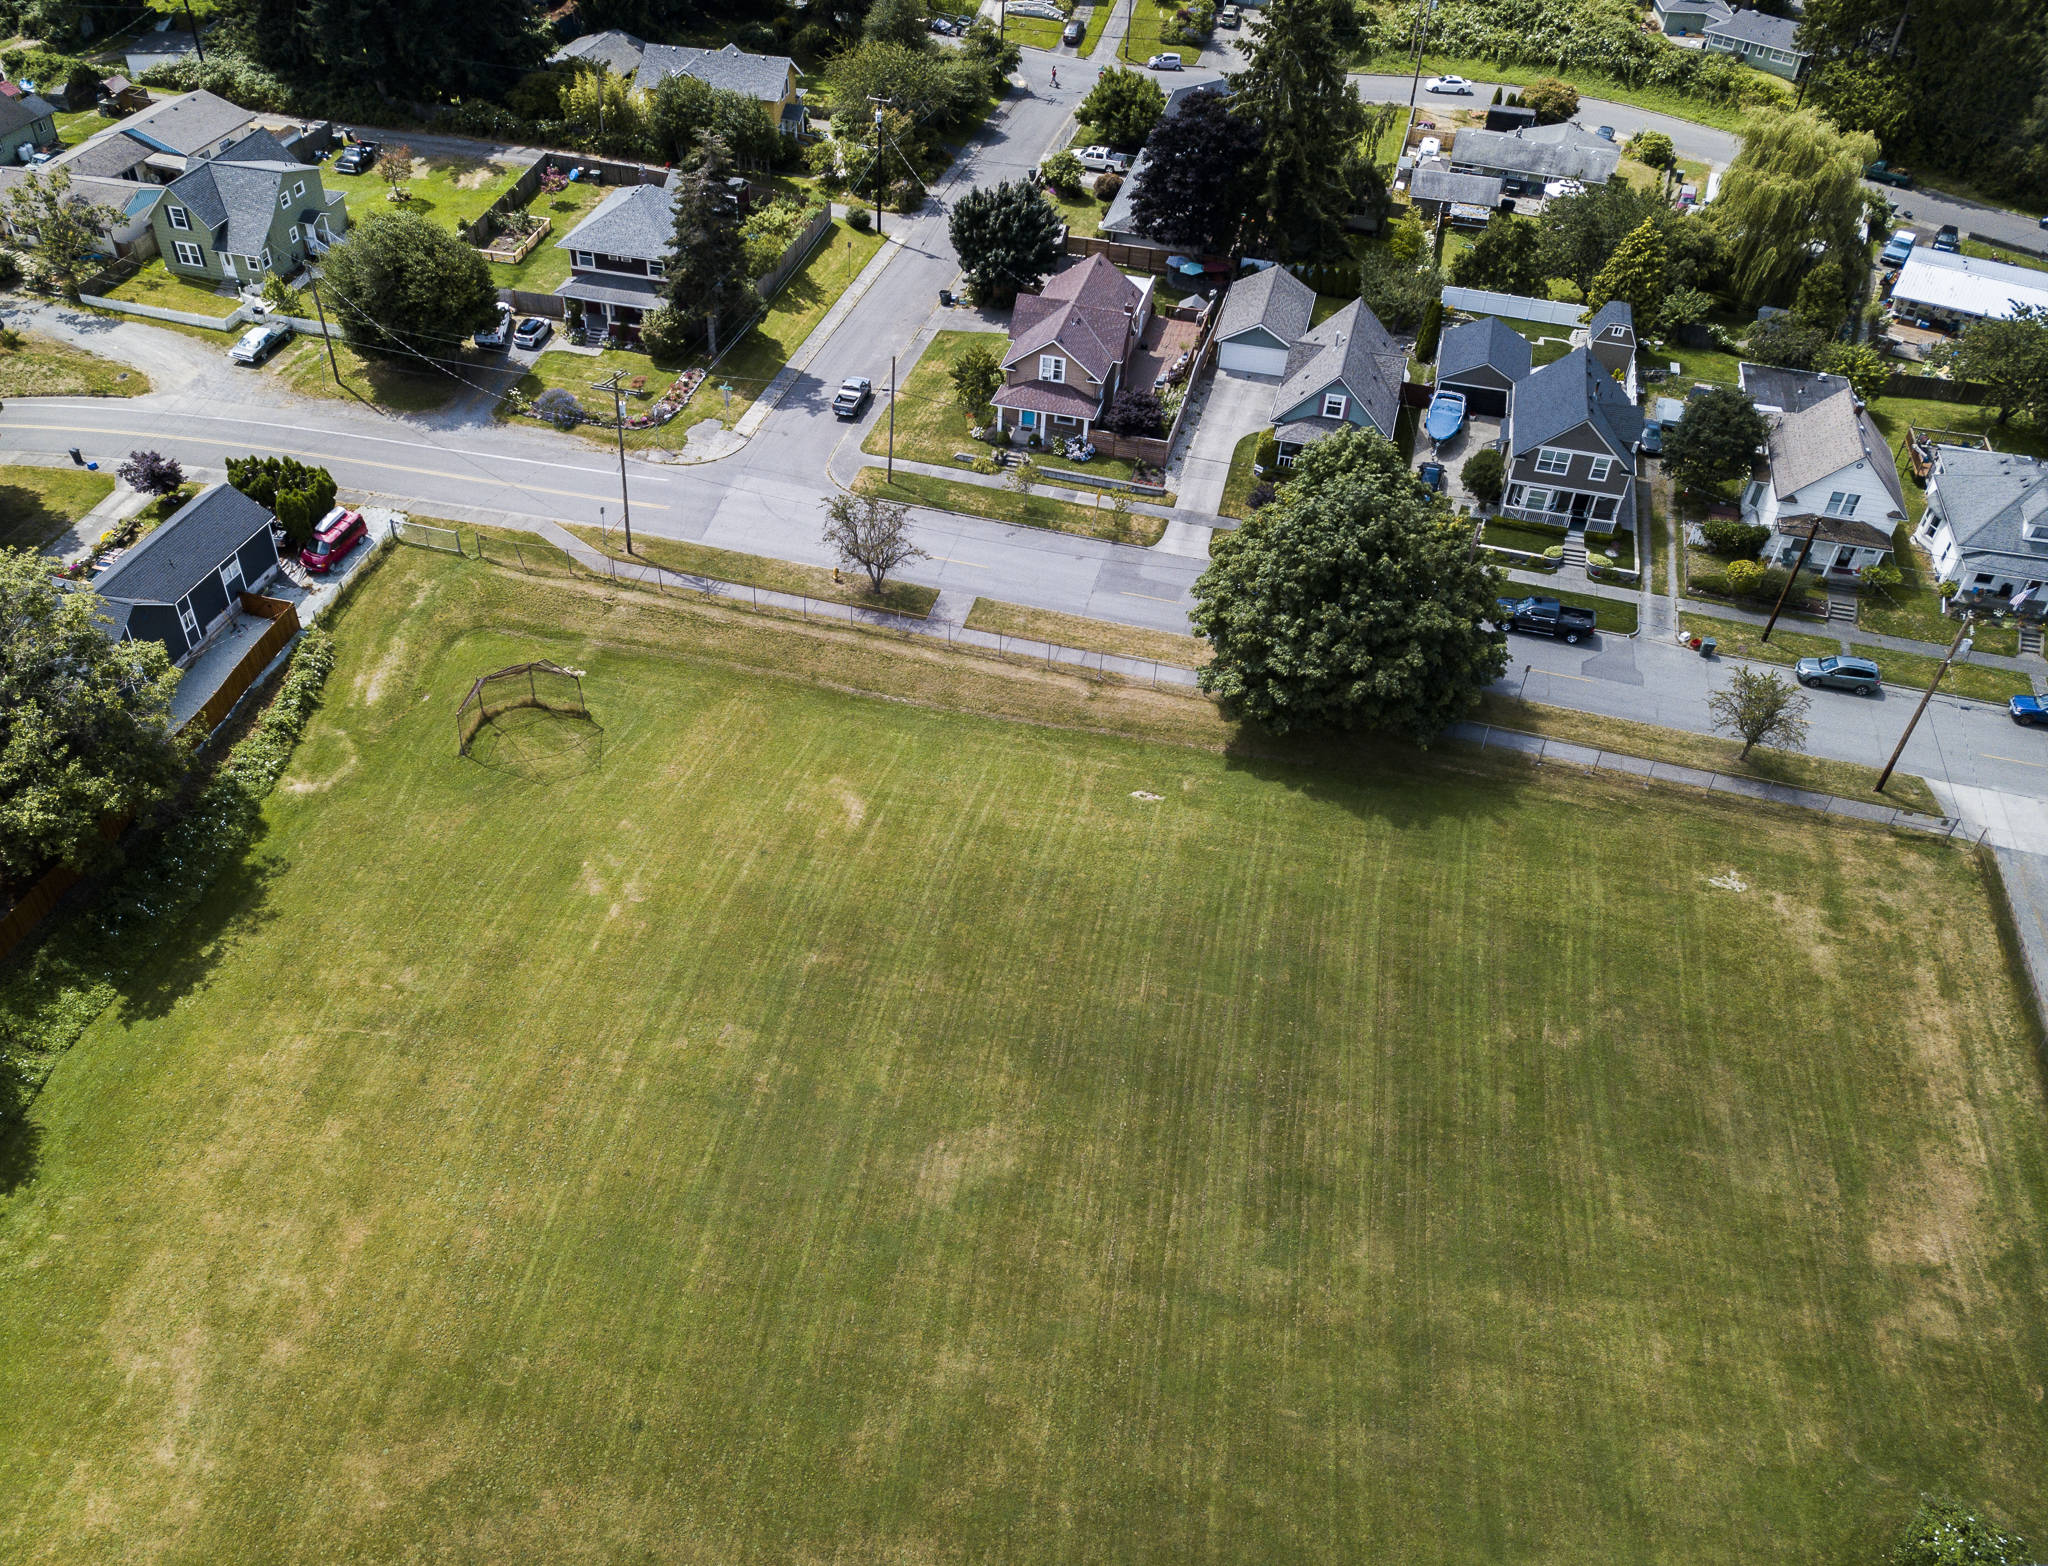 Norton Playfield is comprised of three acres owned by Housing Hope, which plans supportive housing for families who have kids in school. (Olivia Vanni / The Herald)